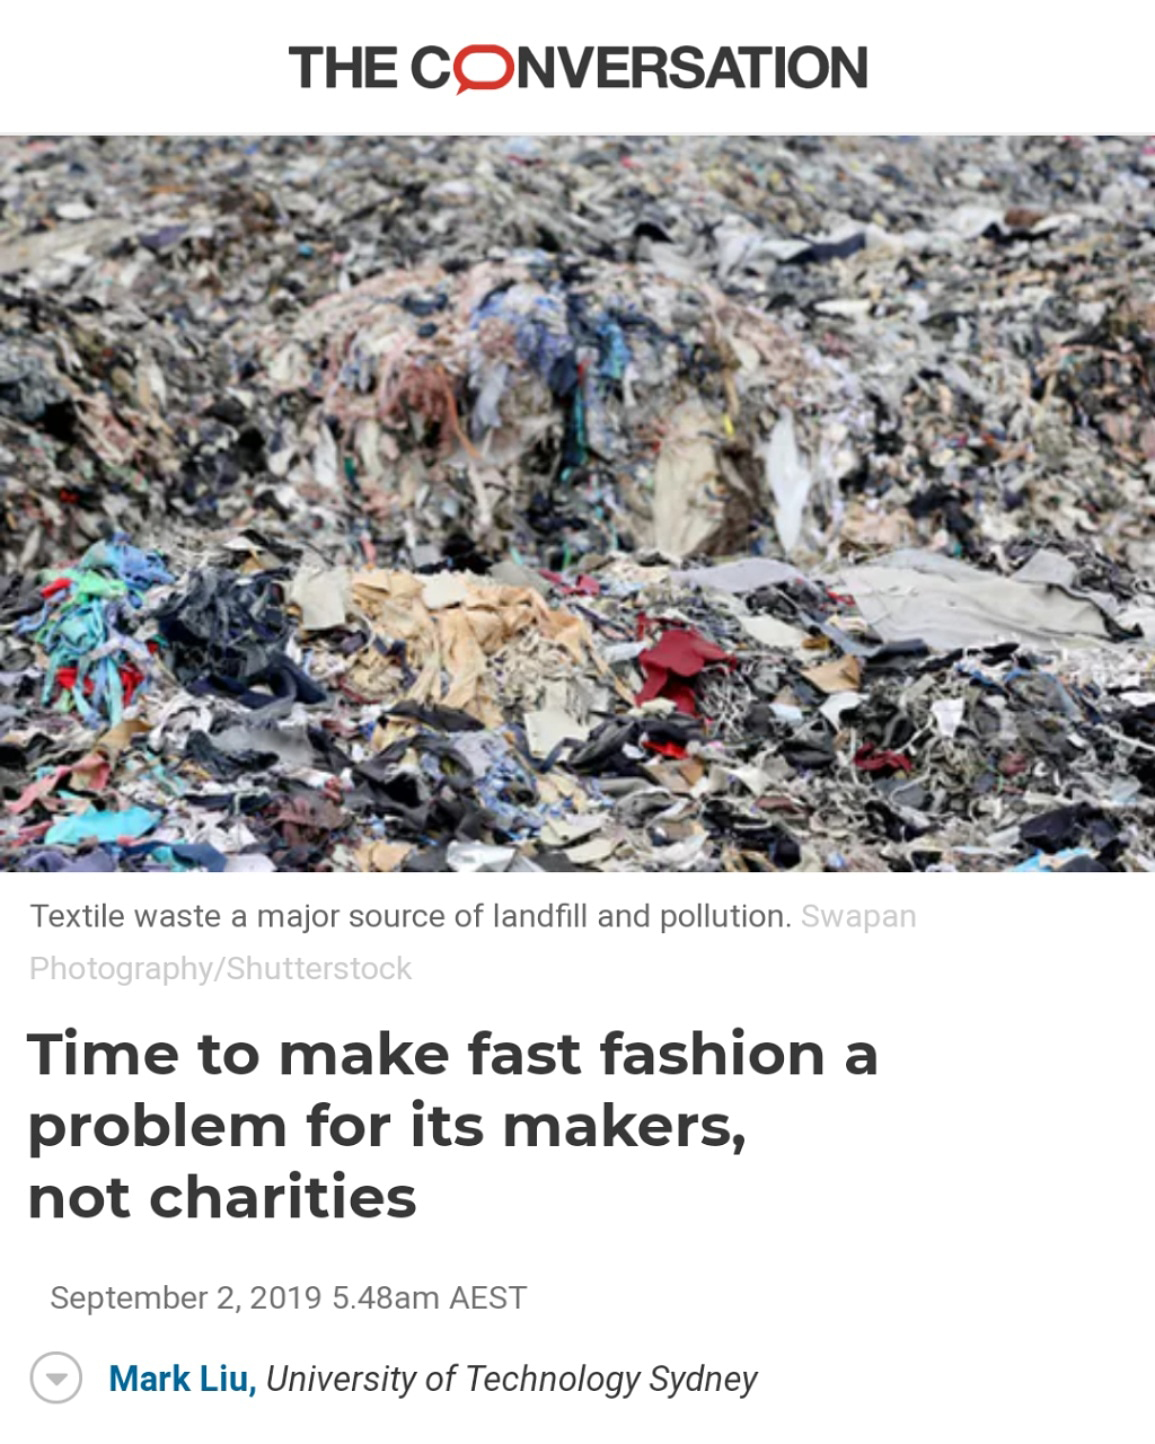 Time to make fast fashion a problem for its makers, not charities    The Conversation  REFERENCE:  Liu, M. 2019, Time to make fast fashion a problem for its makers, not charities, theconversation.com, weblog, viewed 3 September 2019, < https://theconversation.com/time-to-make-fast-fashion-a-problem-for-its-makers-not-charities-117977 >